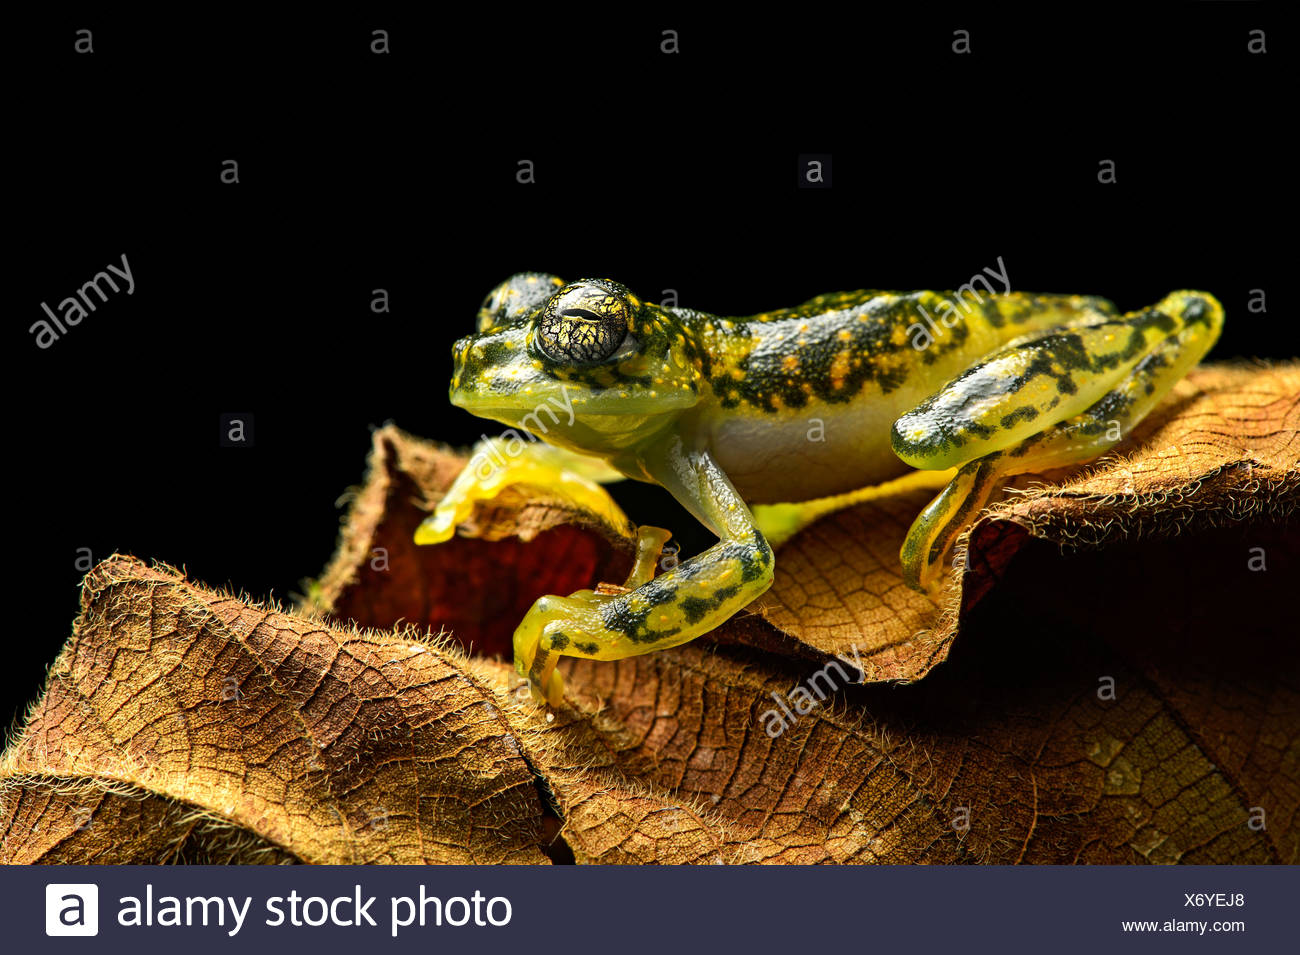 White-spotted Cochran Frog (Sachatamia albamoculata) sitting on leaf, Choco rainforest, Canande River Nature Reserve, Ecuador Stock Photo